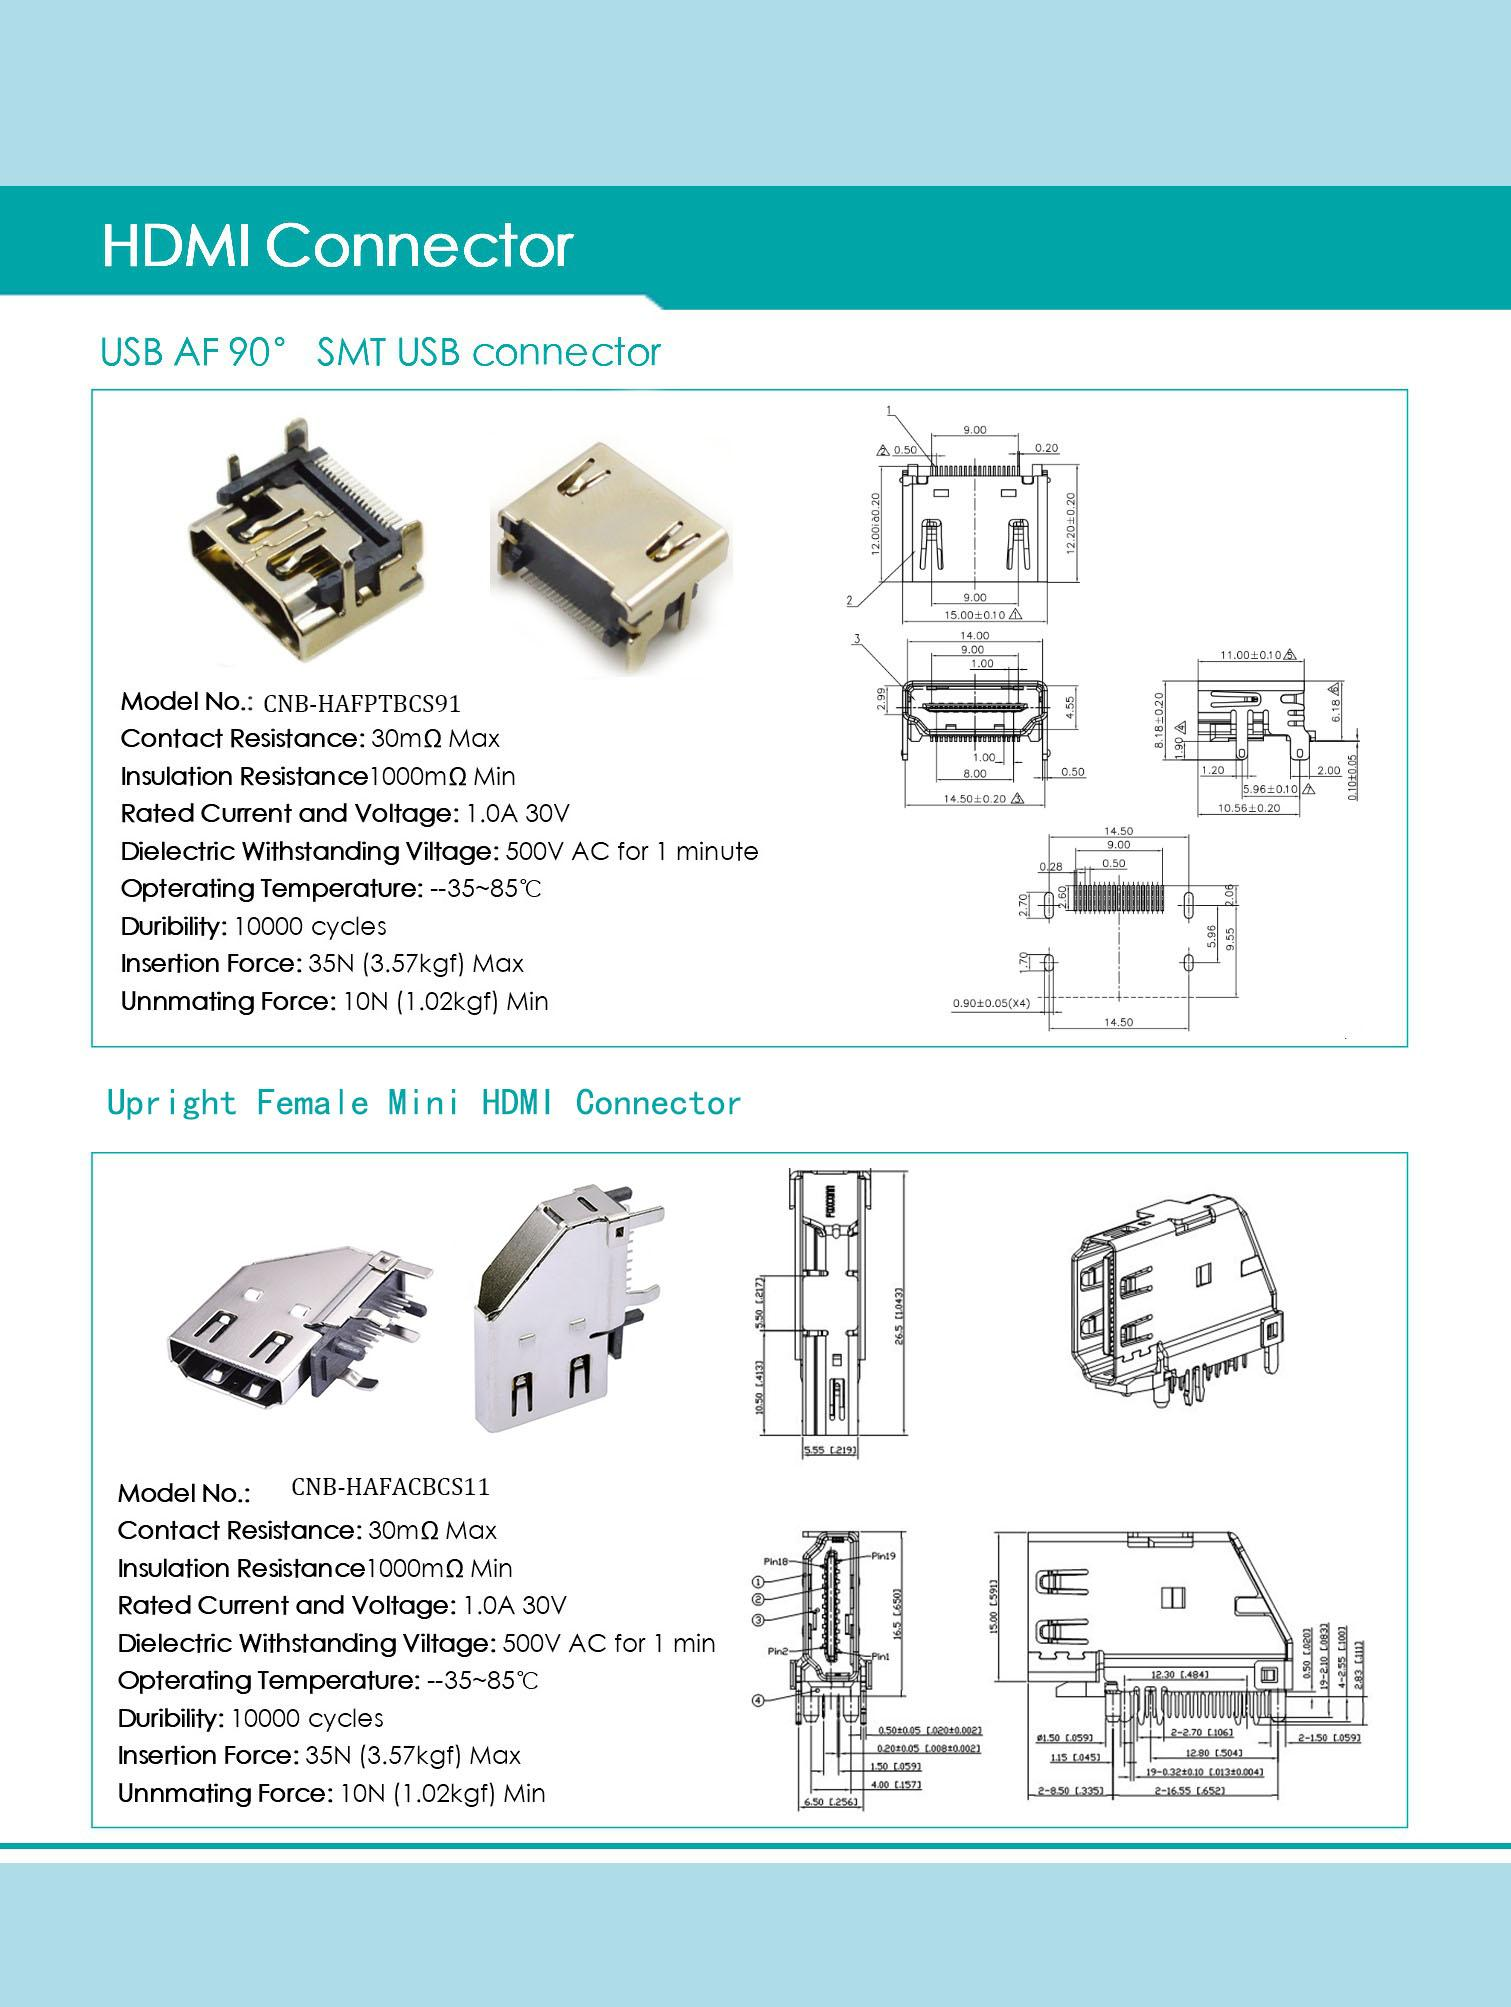 Rightup FemaleMini HDMI Connector from Chinese connector terminal manufacturer 3